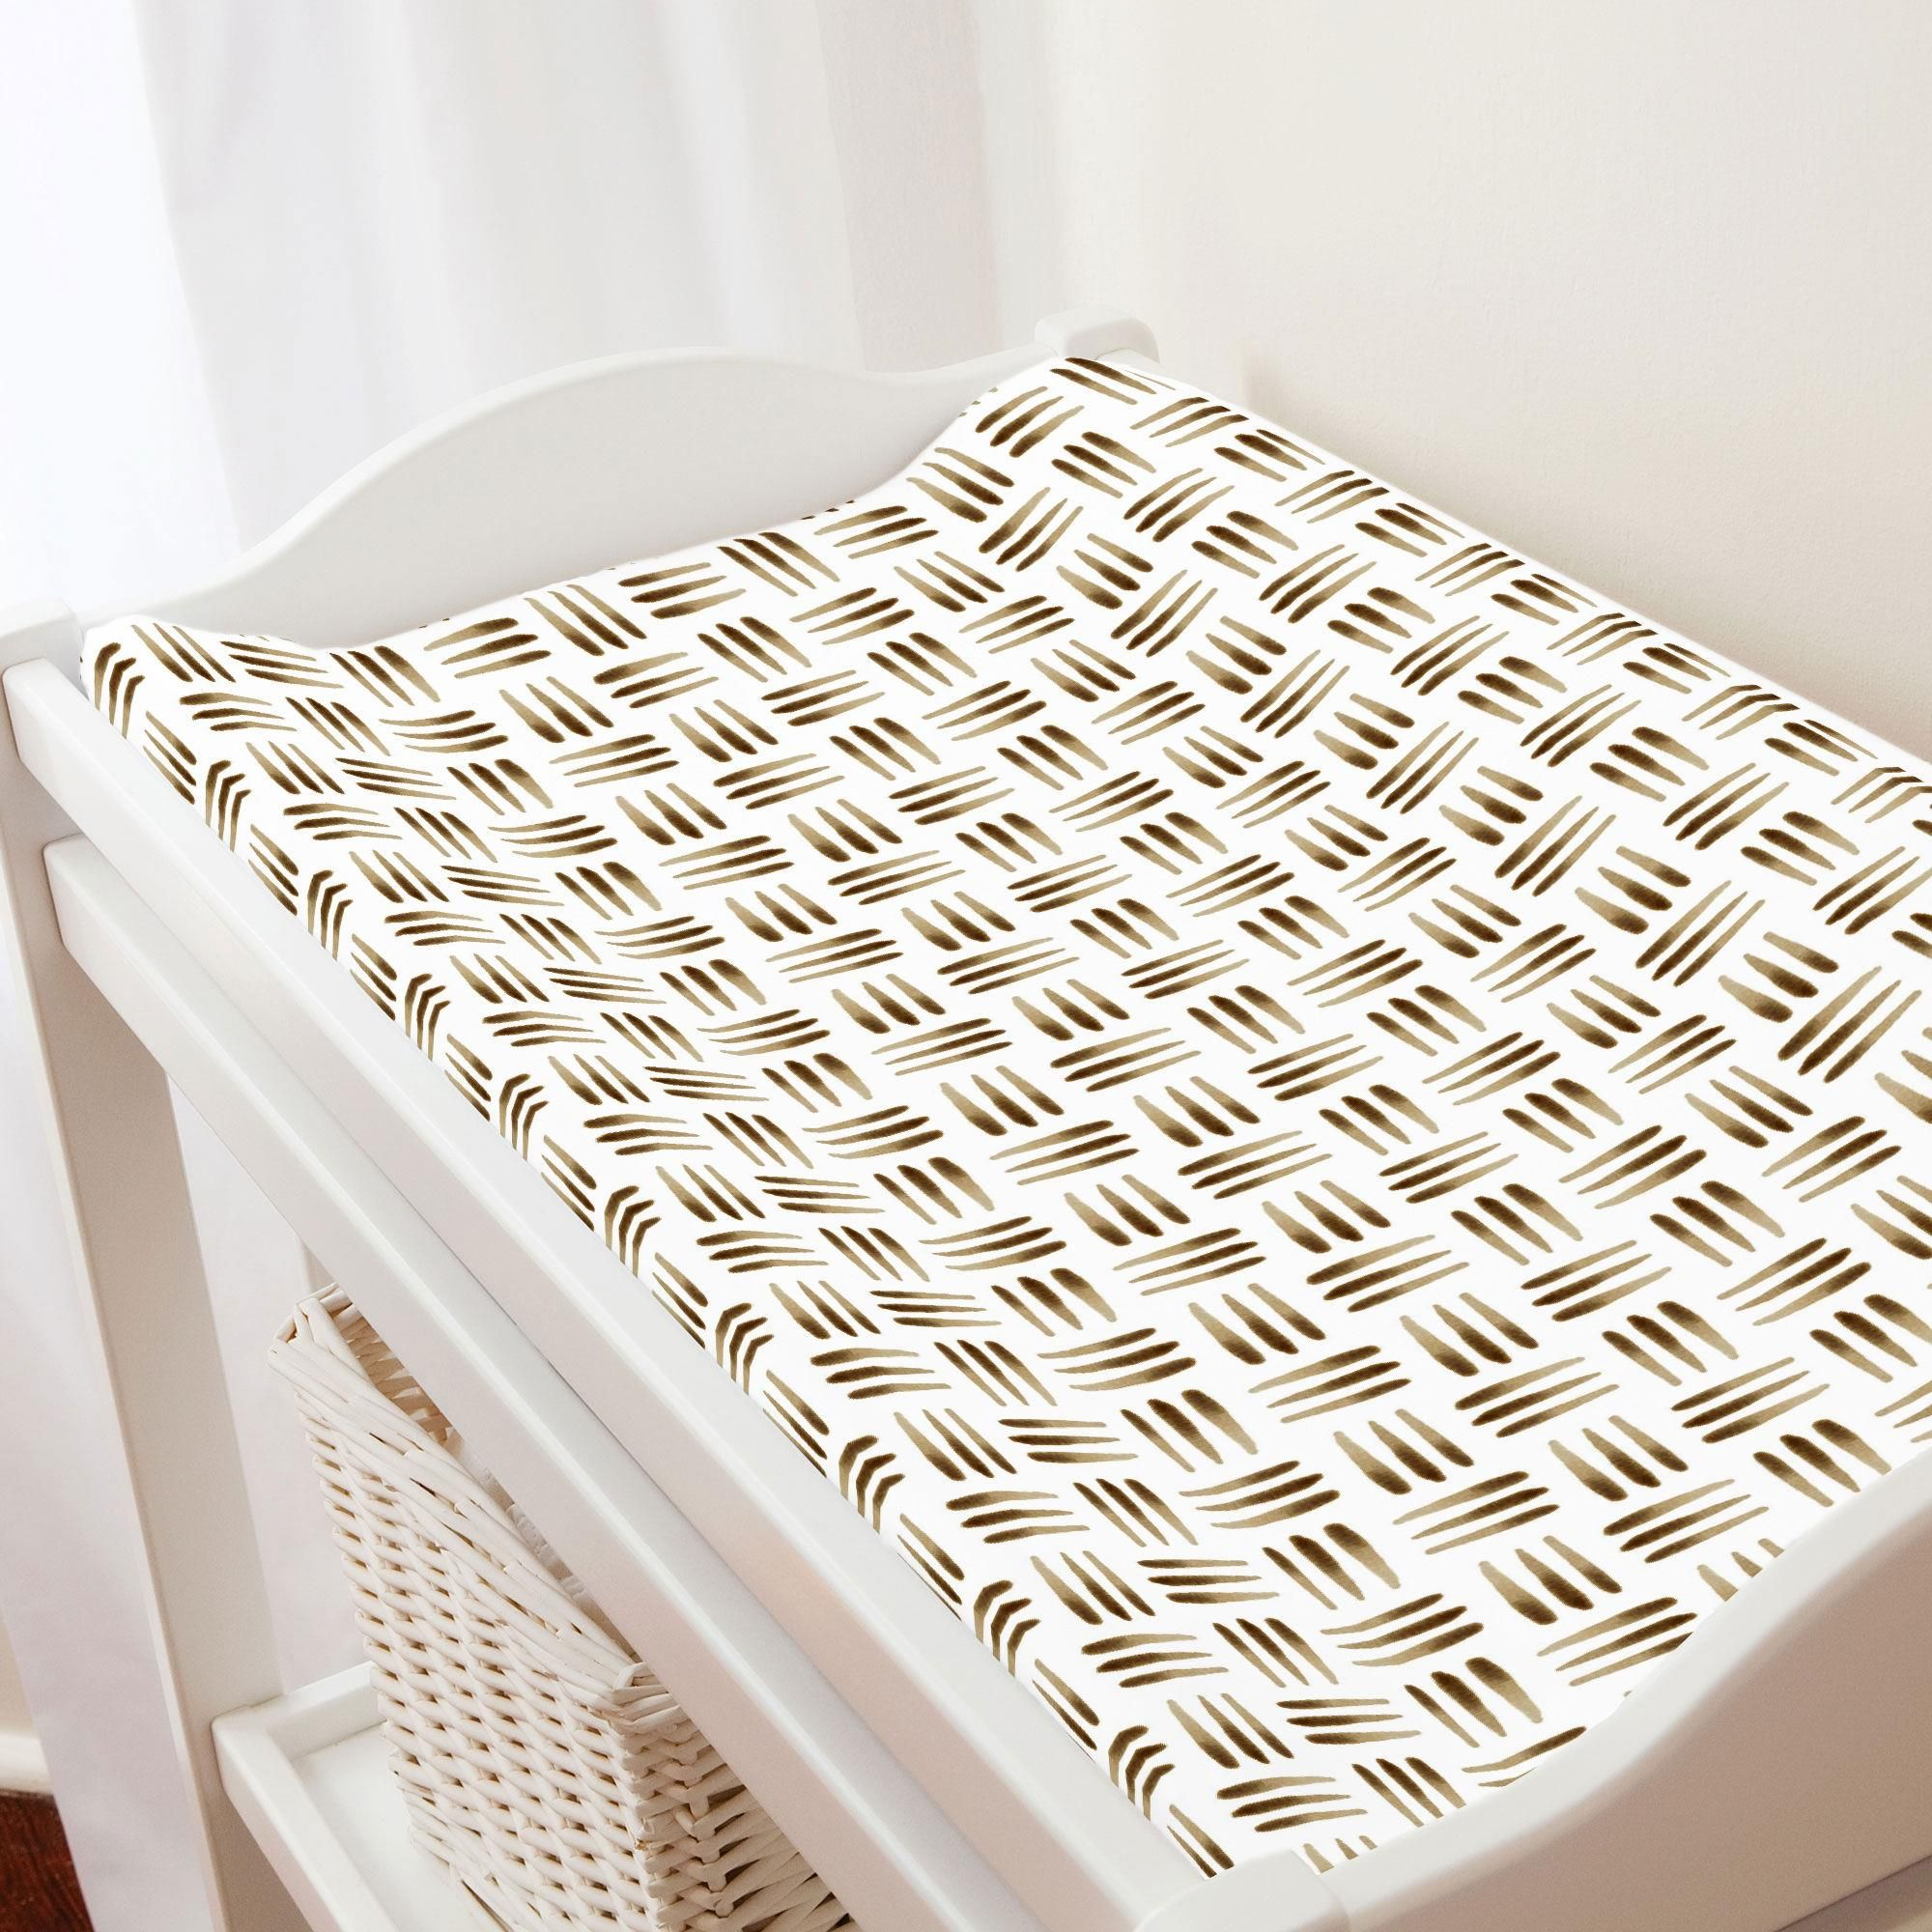 Brown Basket Changing Pad Cover in 2020 Changing pad